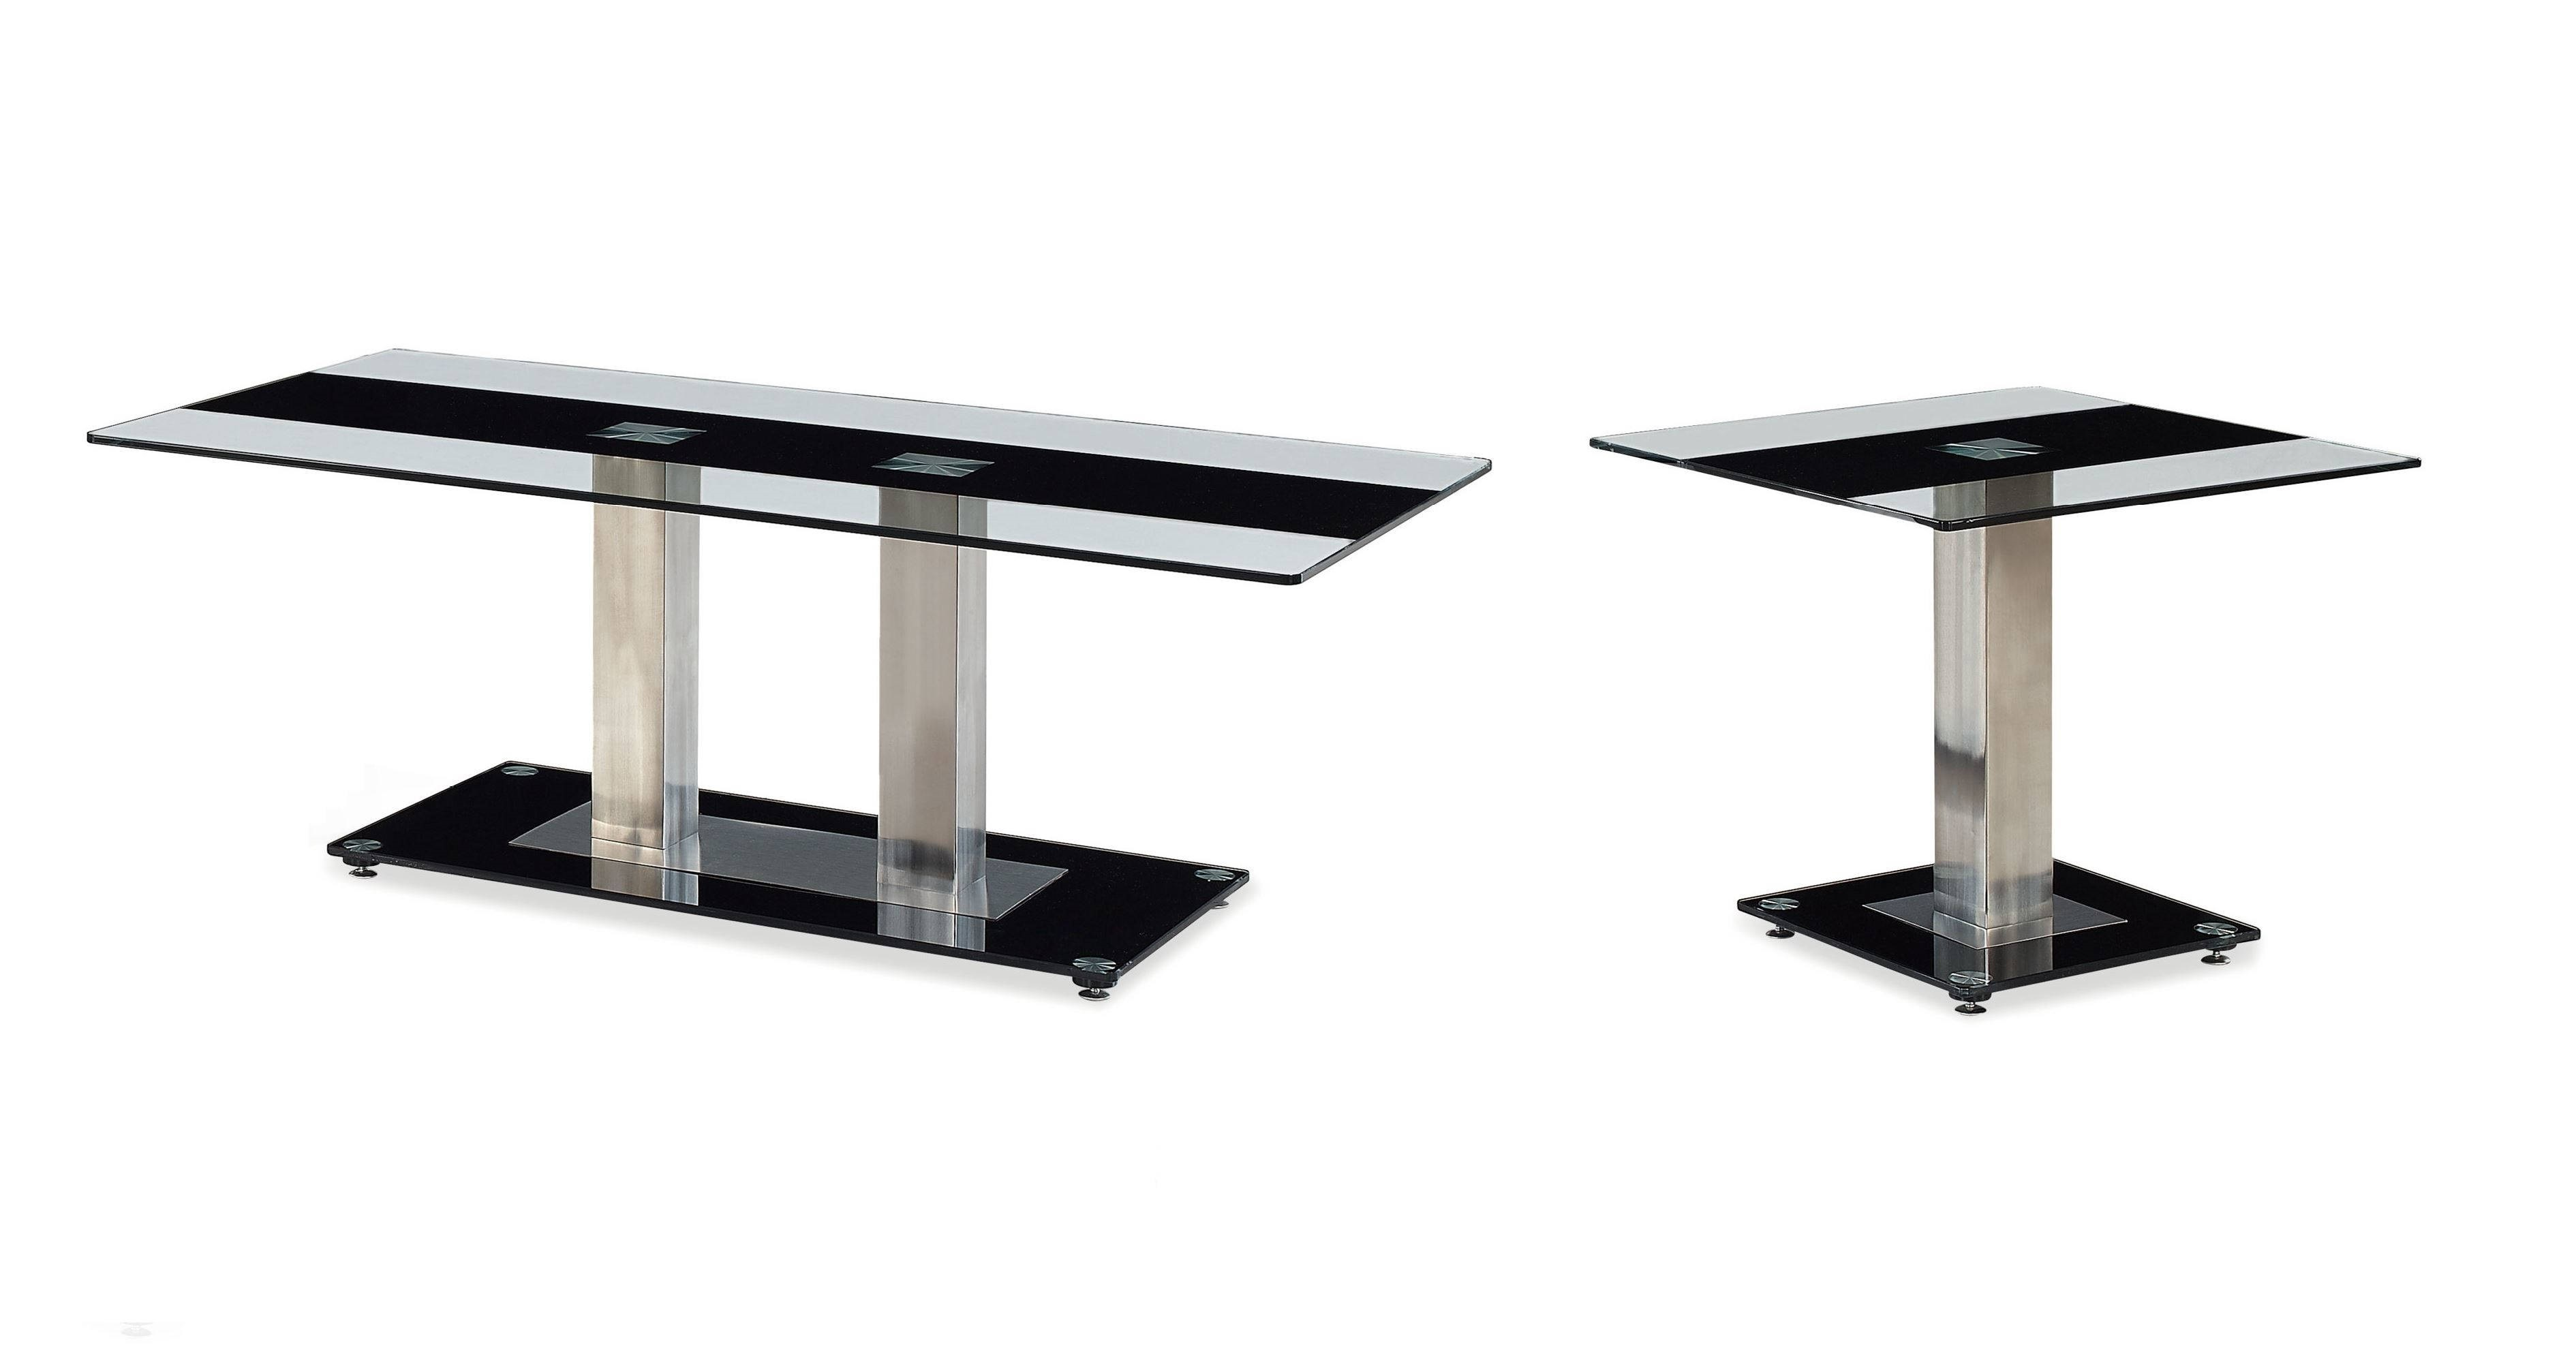 T2108 Series Black Silver Glass Stainless Steel Coffee Table Set Occasional Tables The